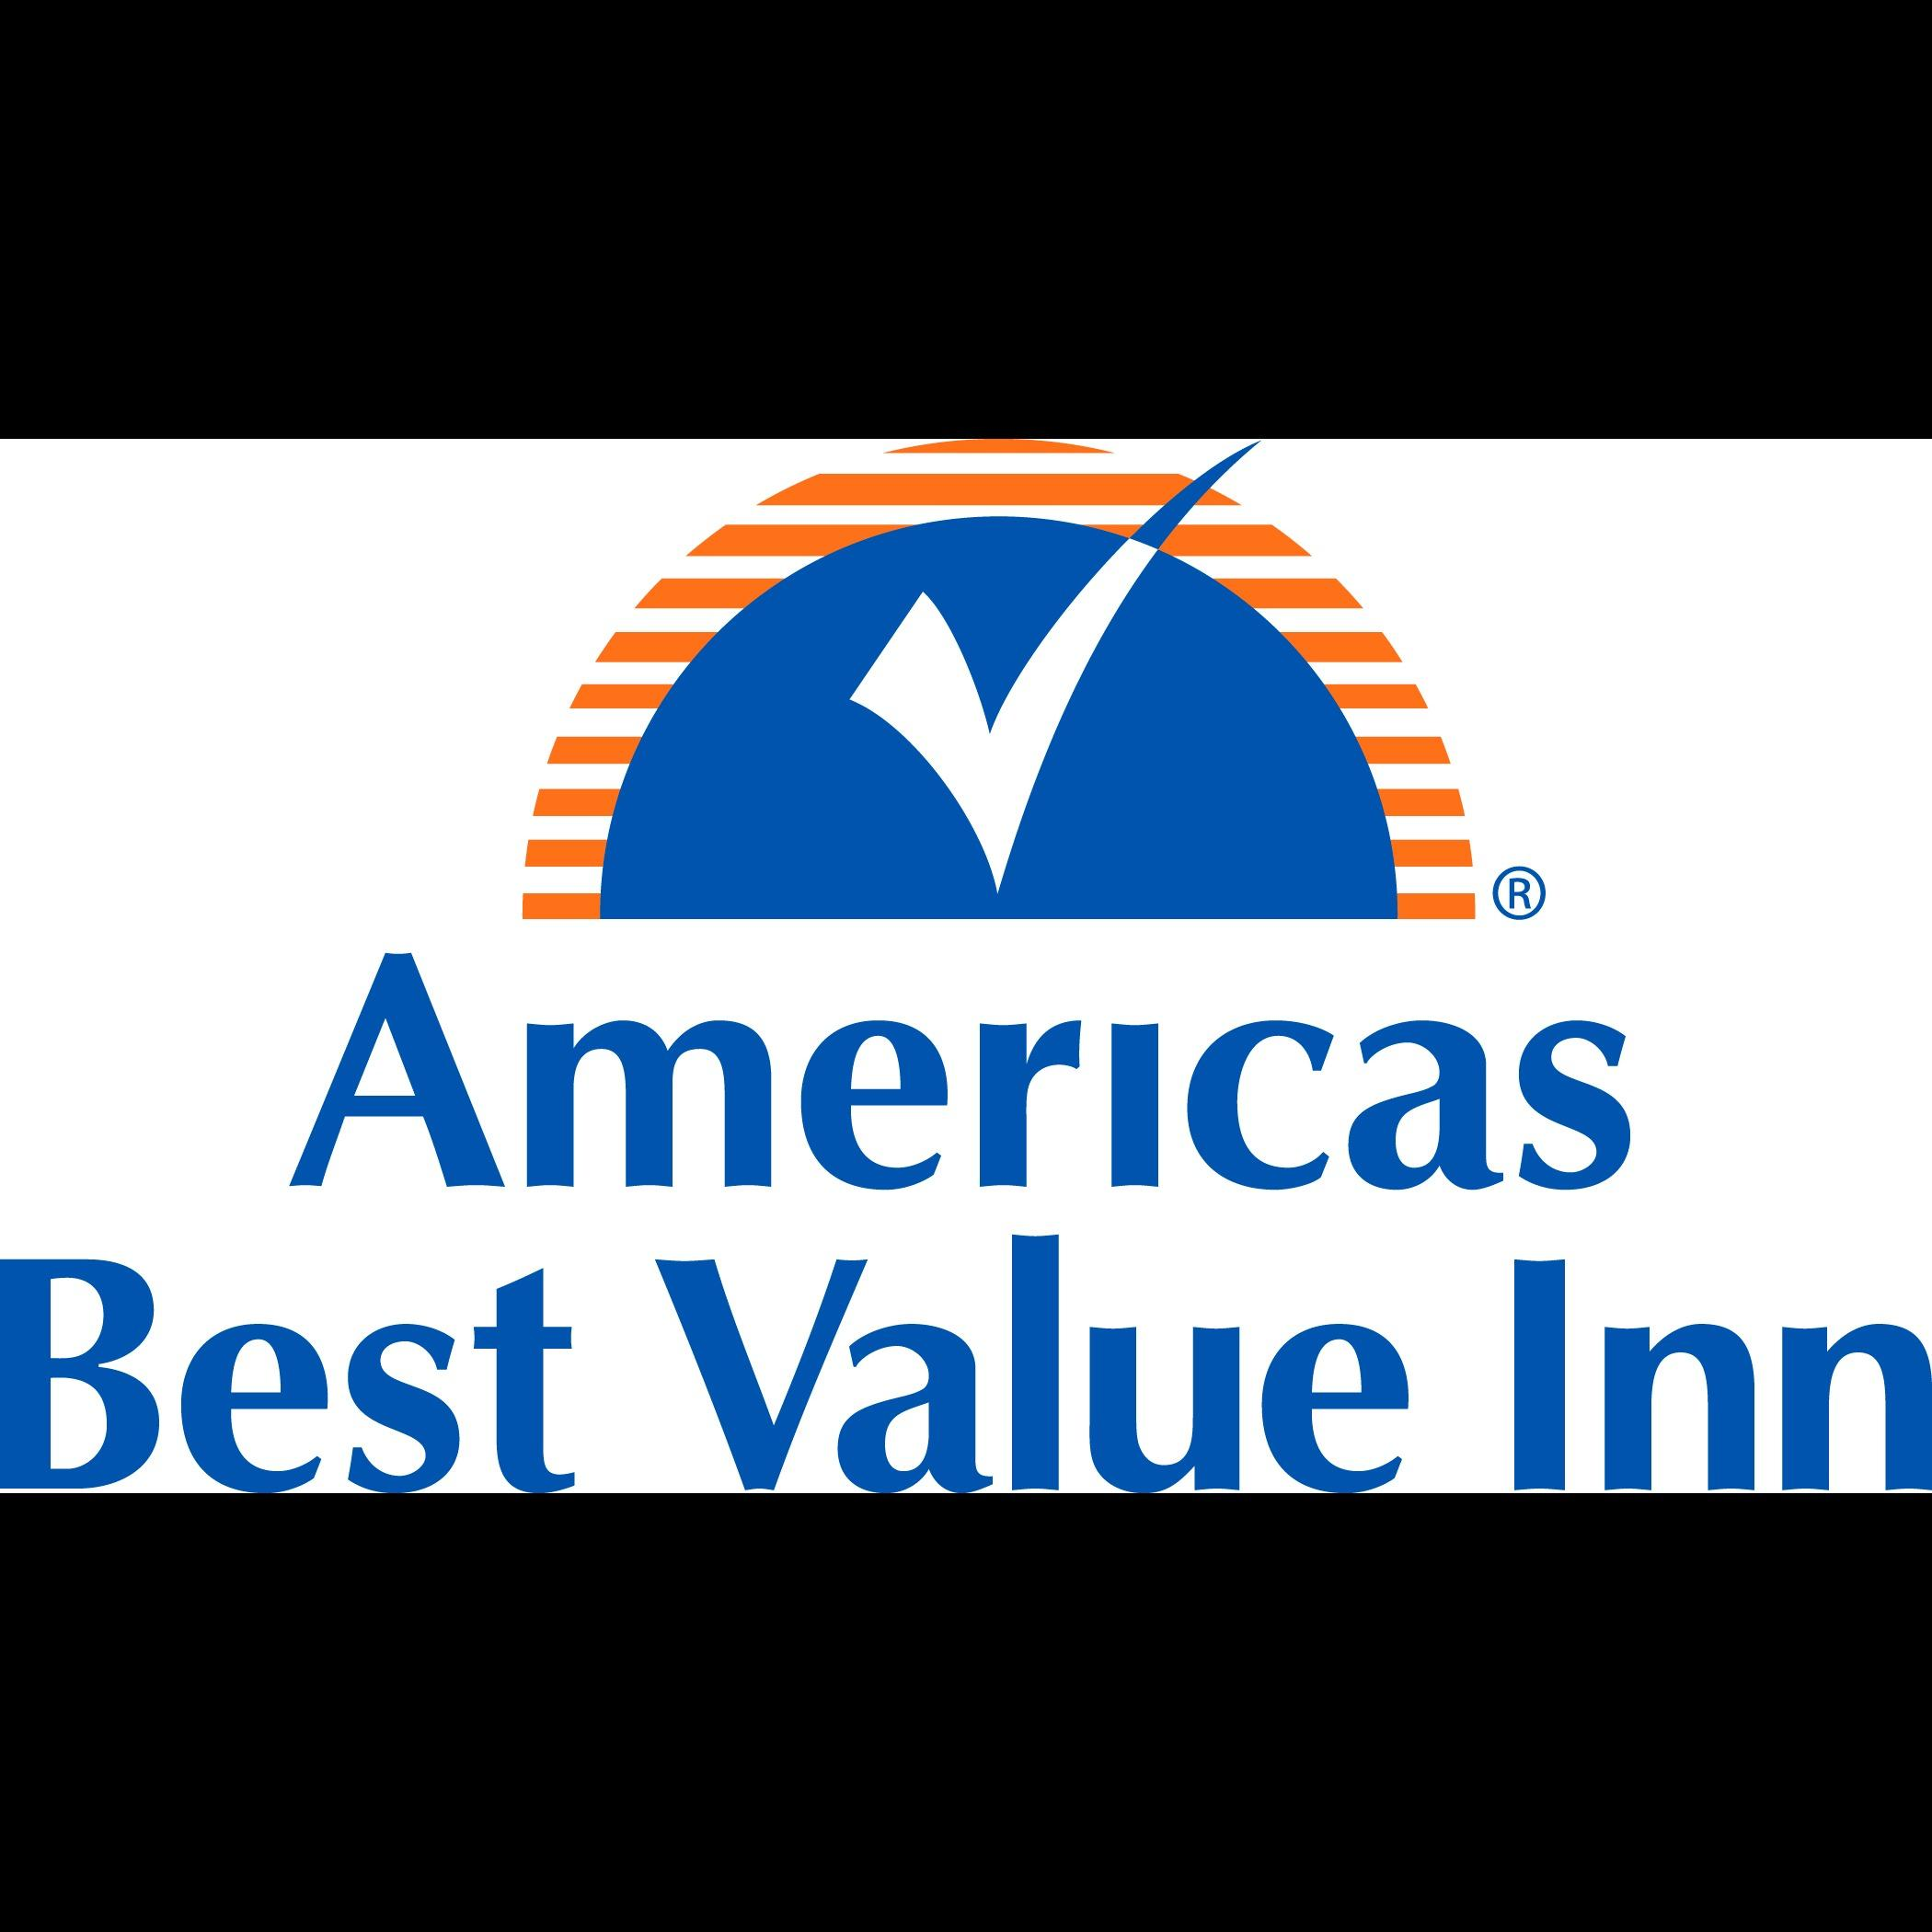 Hotel in MI Three Rivers 49093 Americas Best Value Inn & Suites - Three Rivers 1211 W. Broadway  (269)273-8100